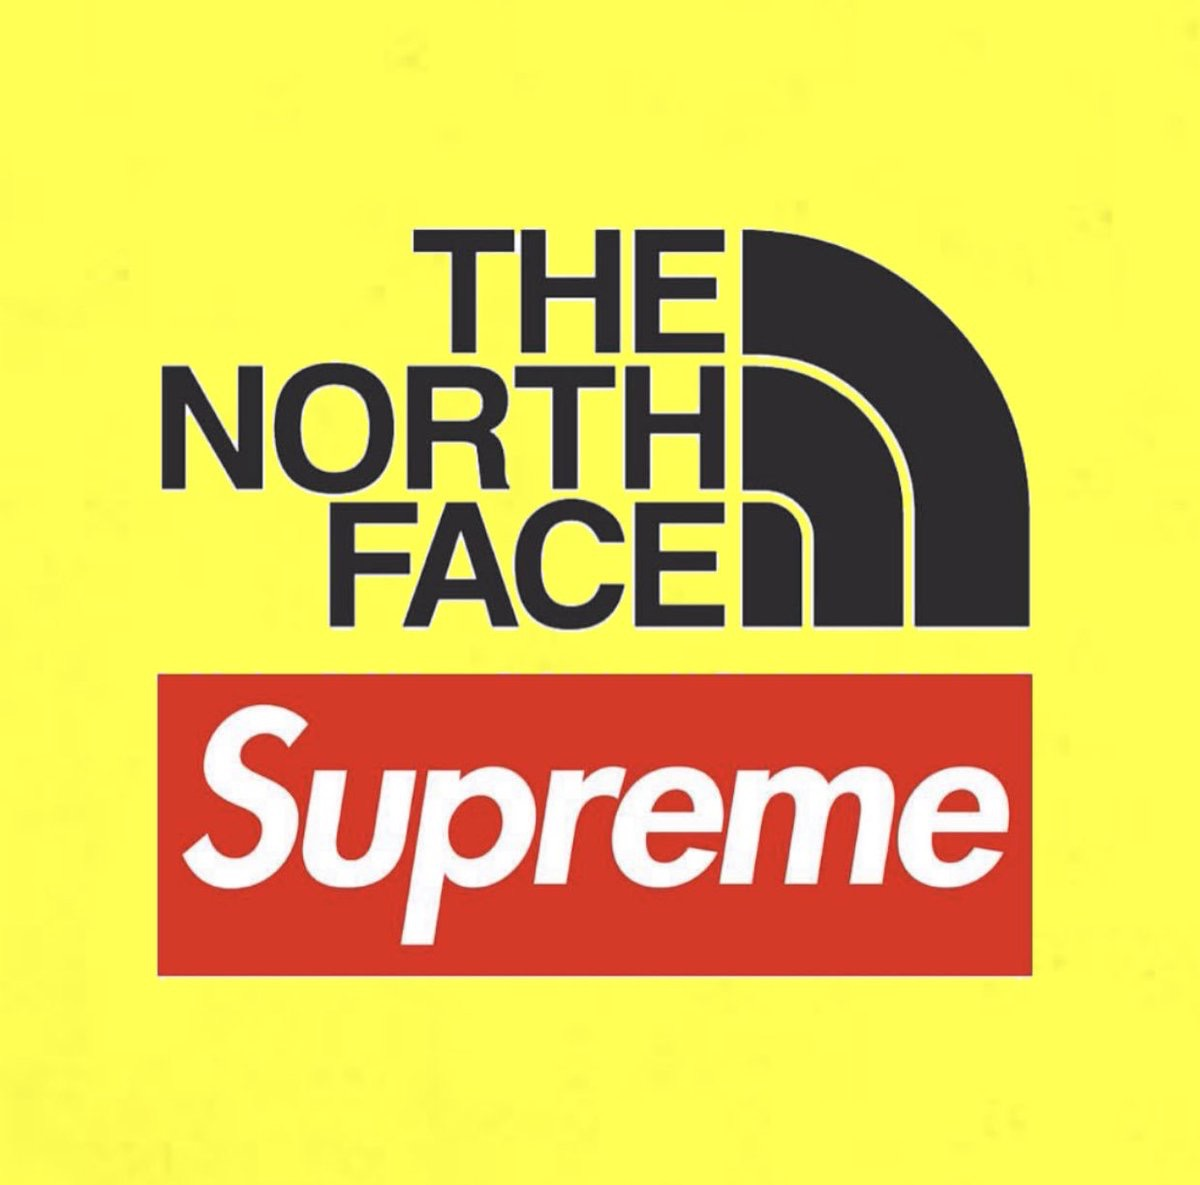 supreme-the-north-face-statue-series-19aw-collaboration-release-info